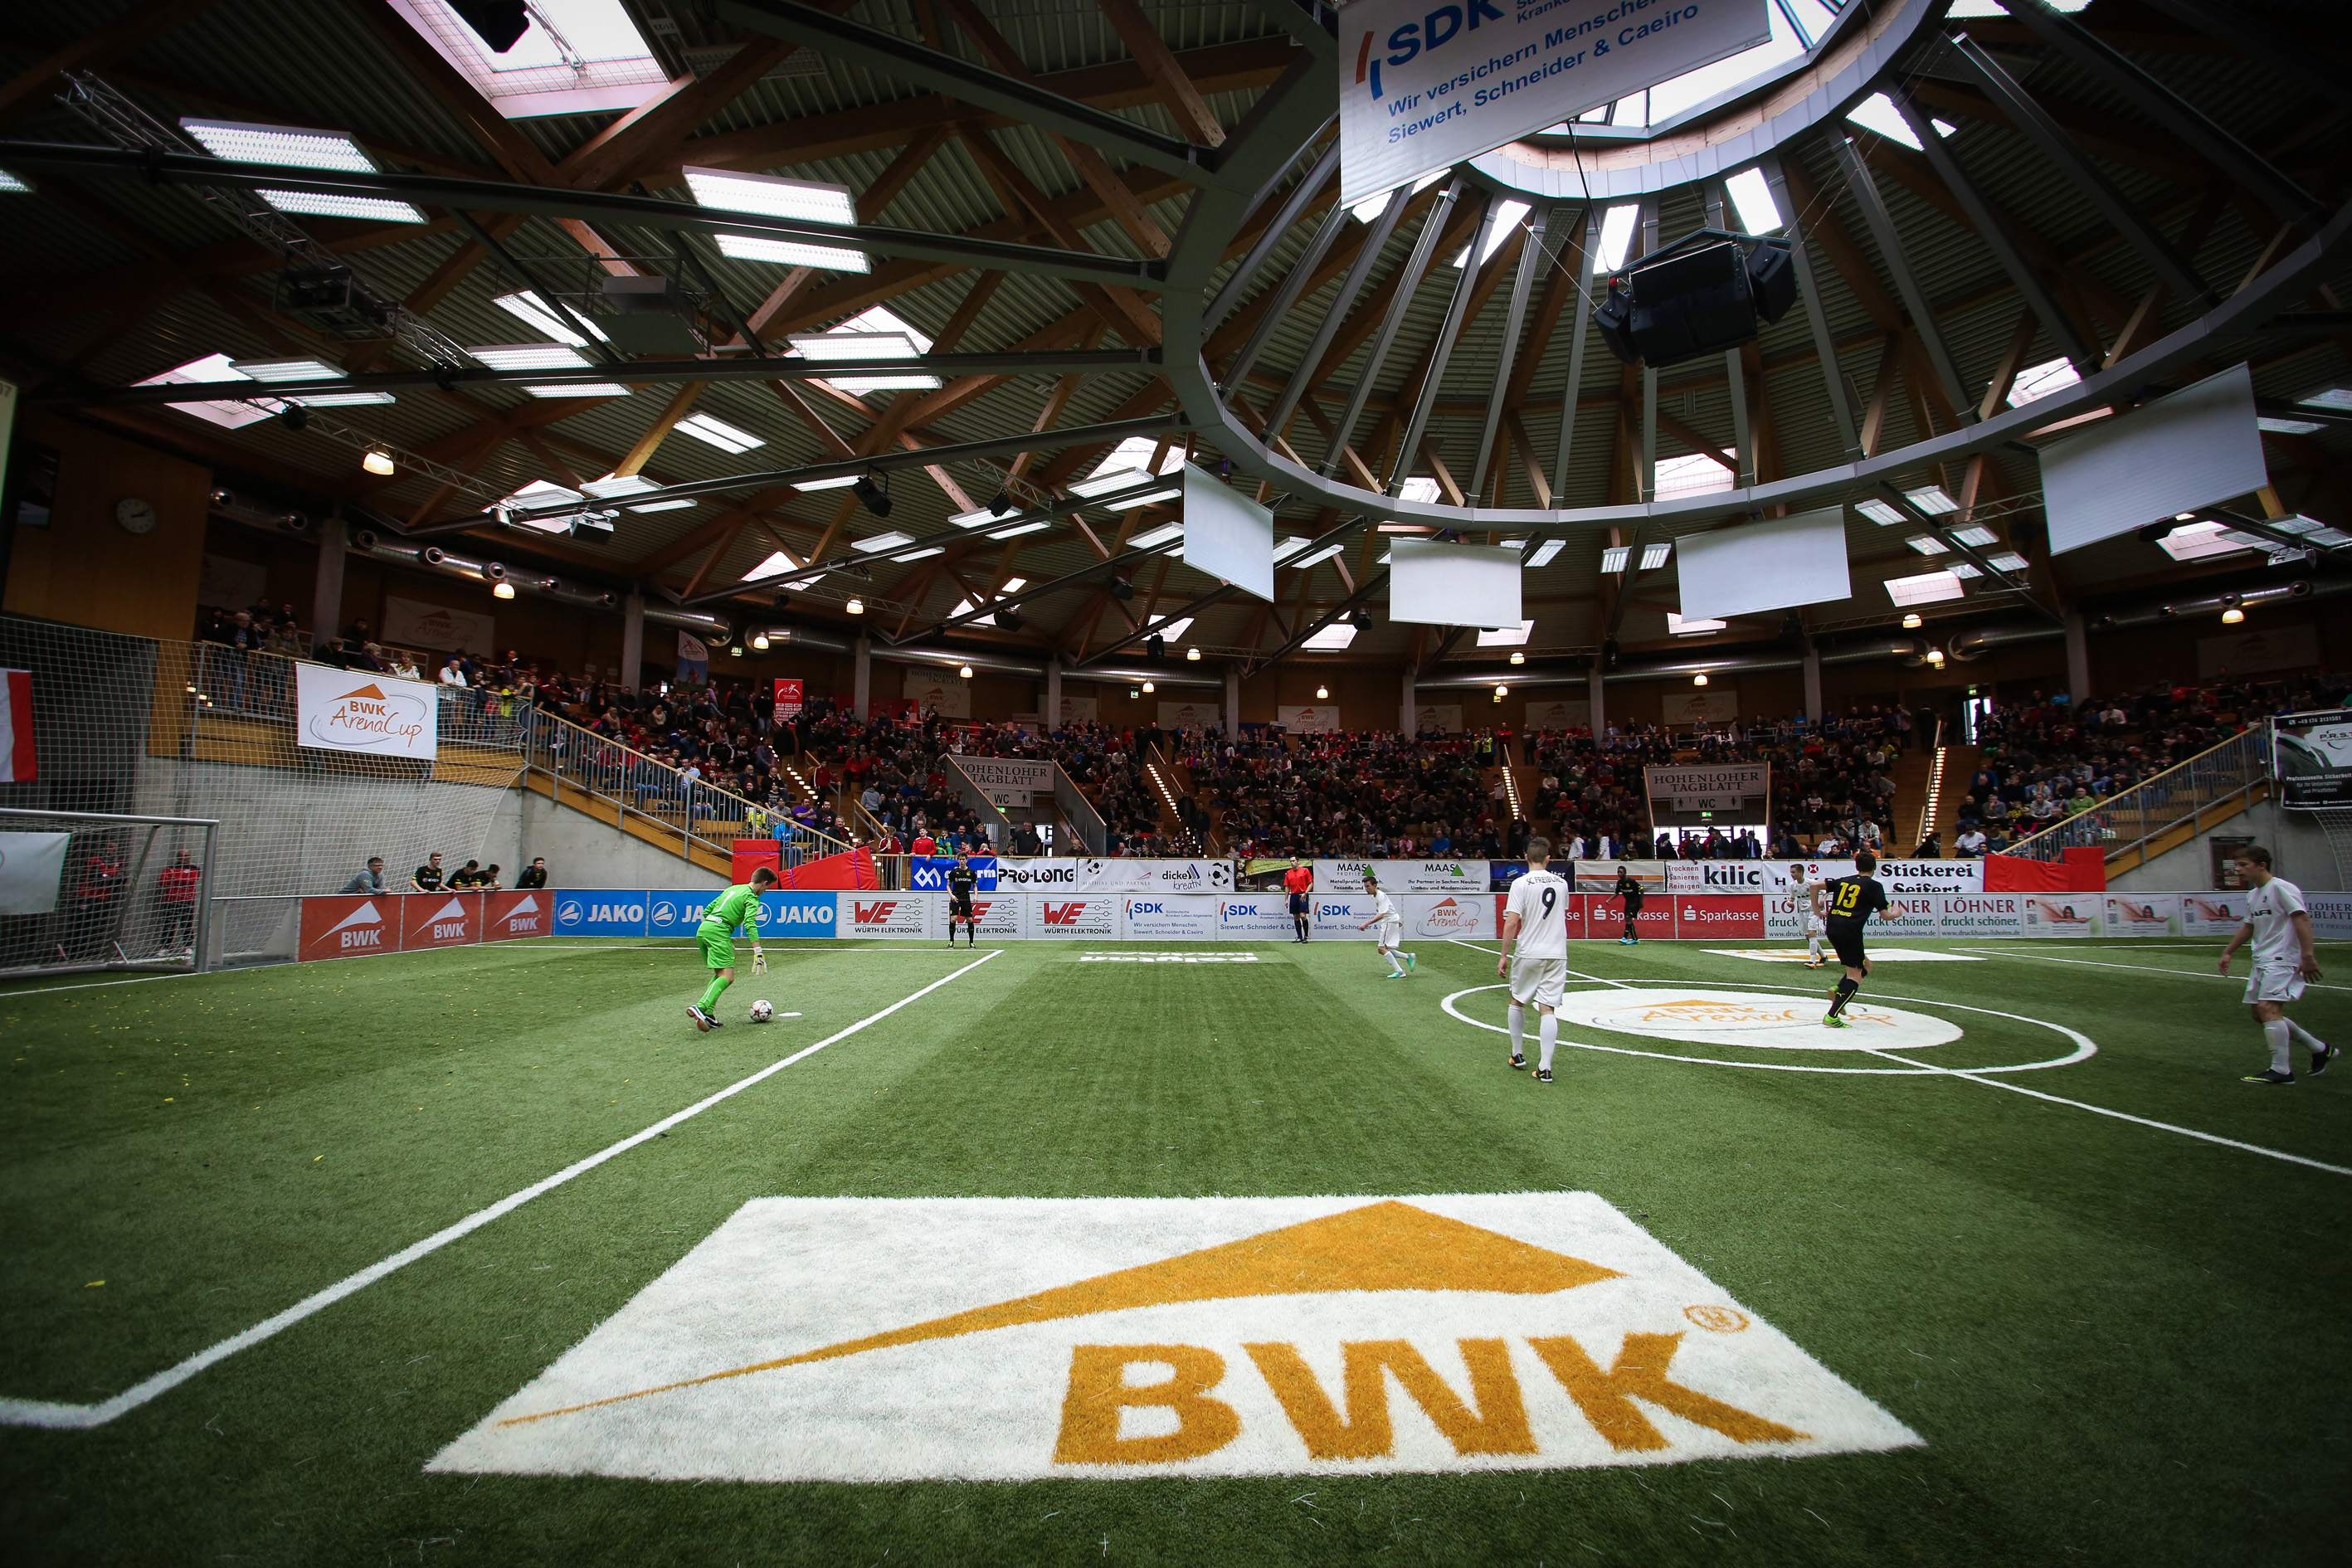 11. internationaler BWK-Arenacup